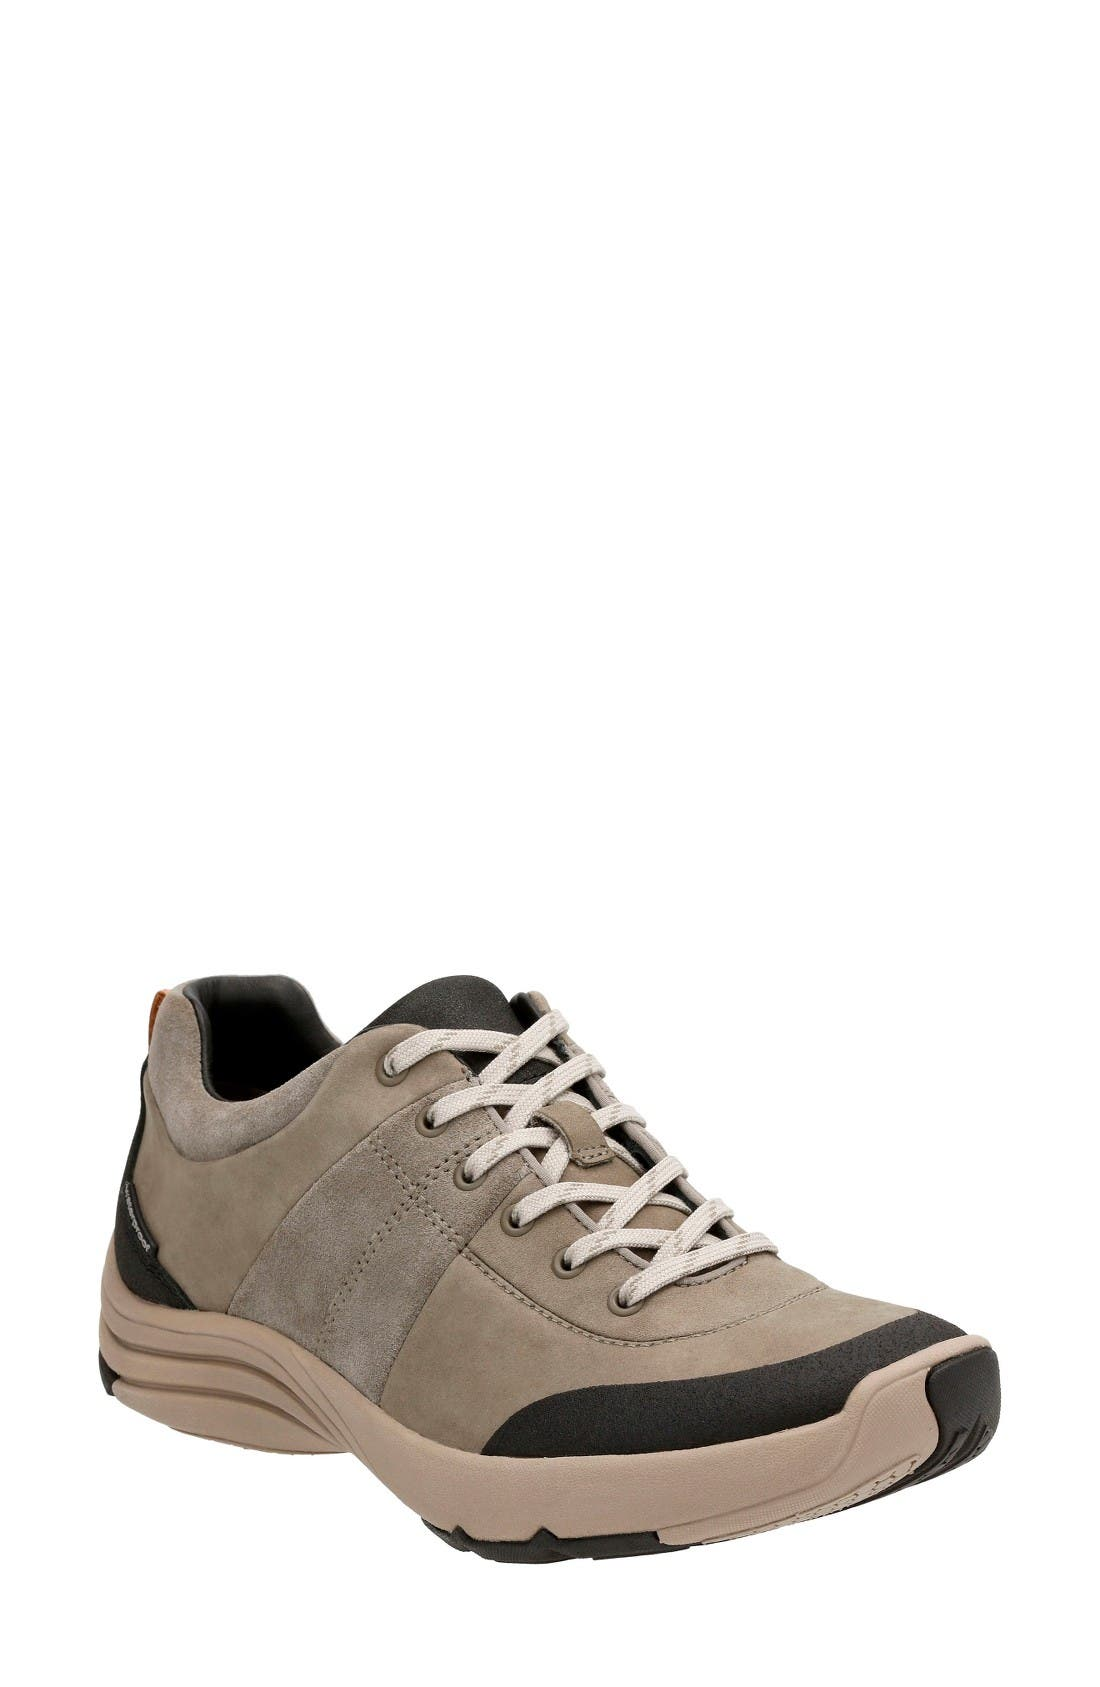 CLARKS<SUP>®</SUP> Wave Andes Sneaker